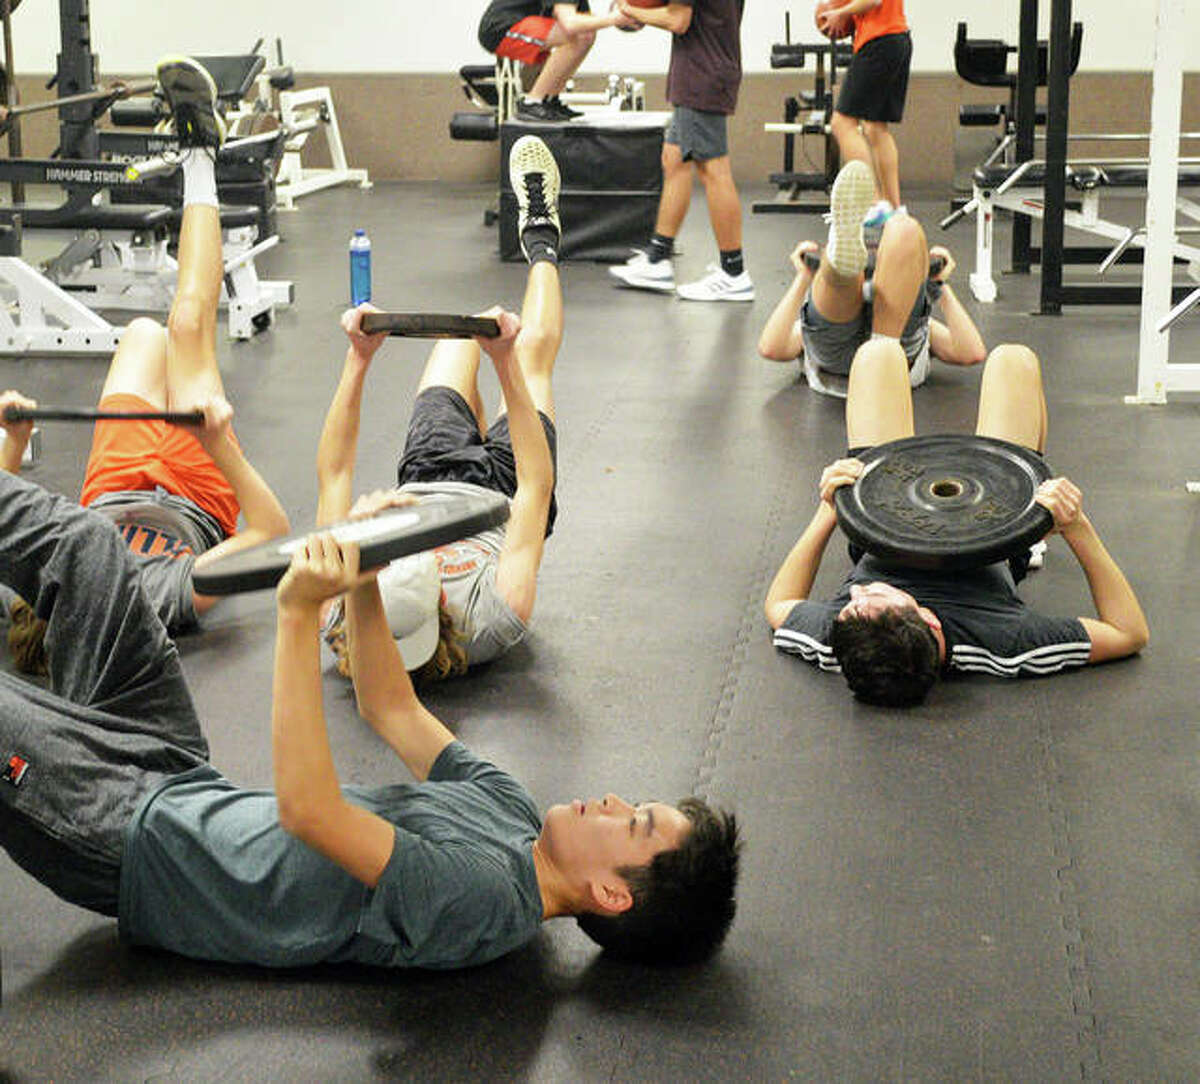 Weightlifting is among the activities for the Edwardsville tennis program's winter workouts, which are held three days a week at EHS from late November until the end of February.